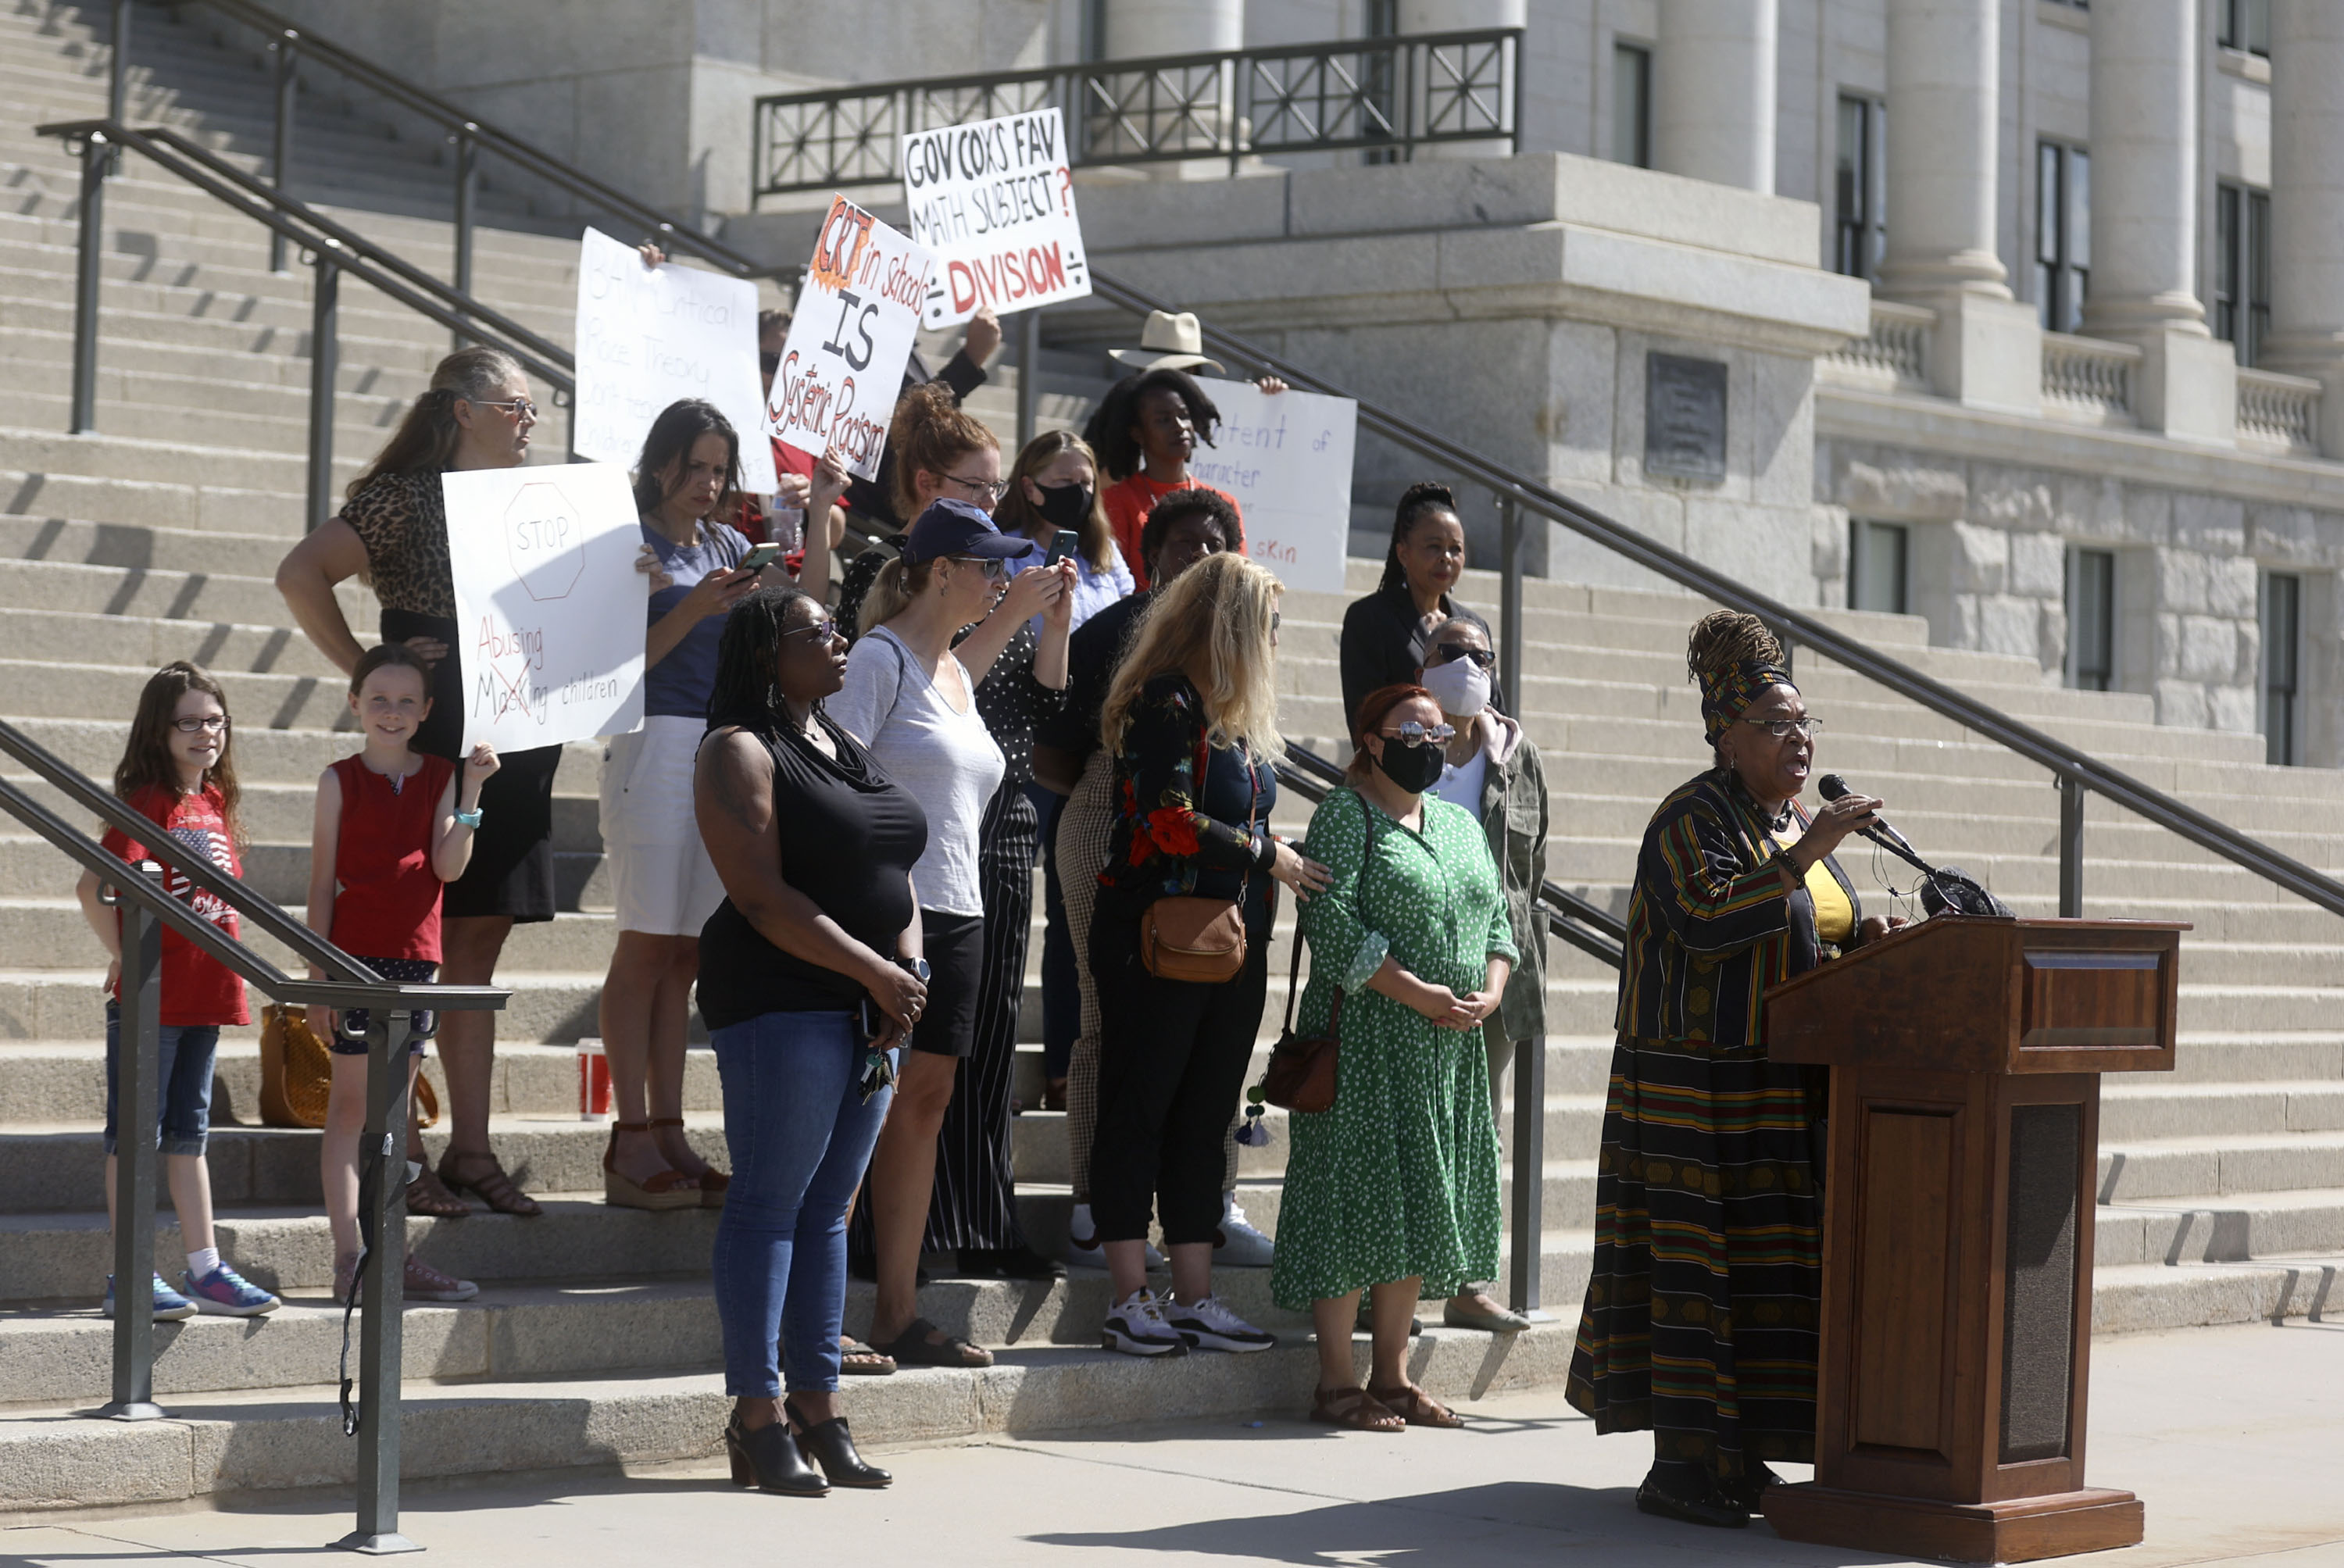 Educators and community activists stand on the steps of the Utah Capitol in Salt Lake City to protest a plan to pass a resolution encouraging the ban of critical race theory concepts.